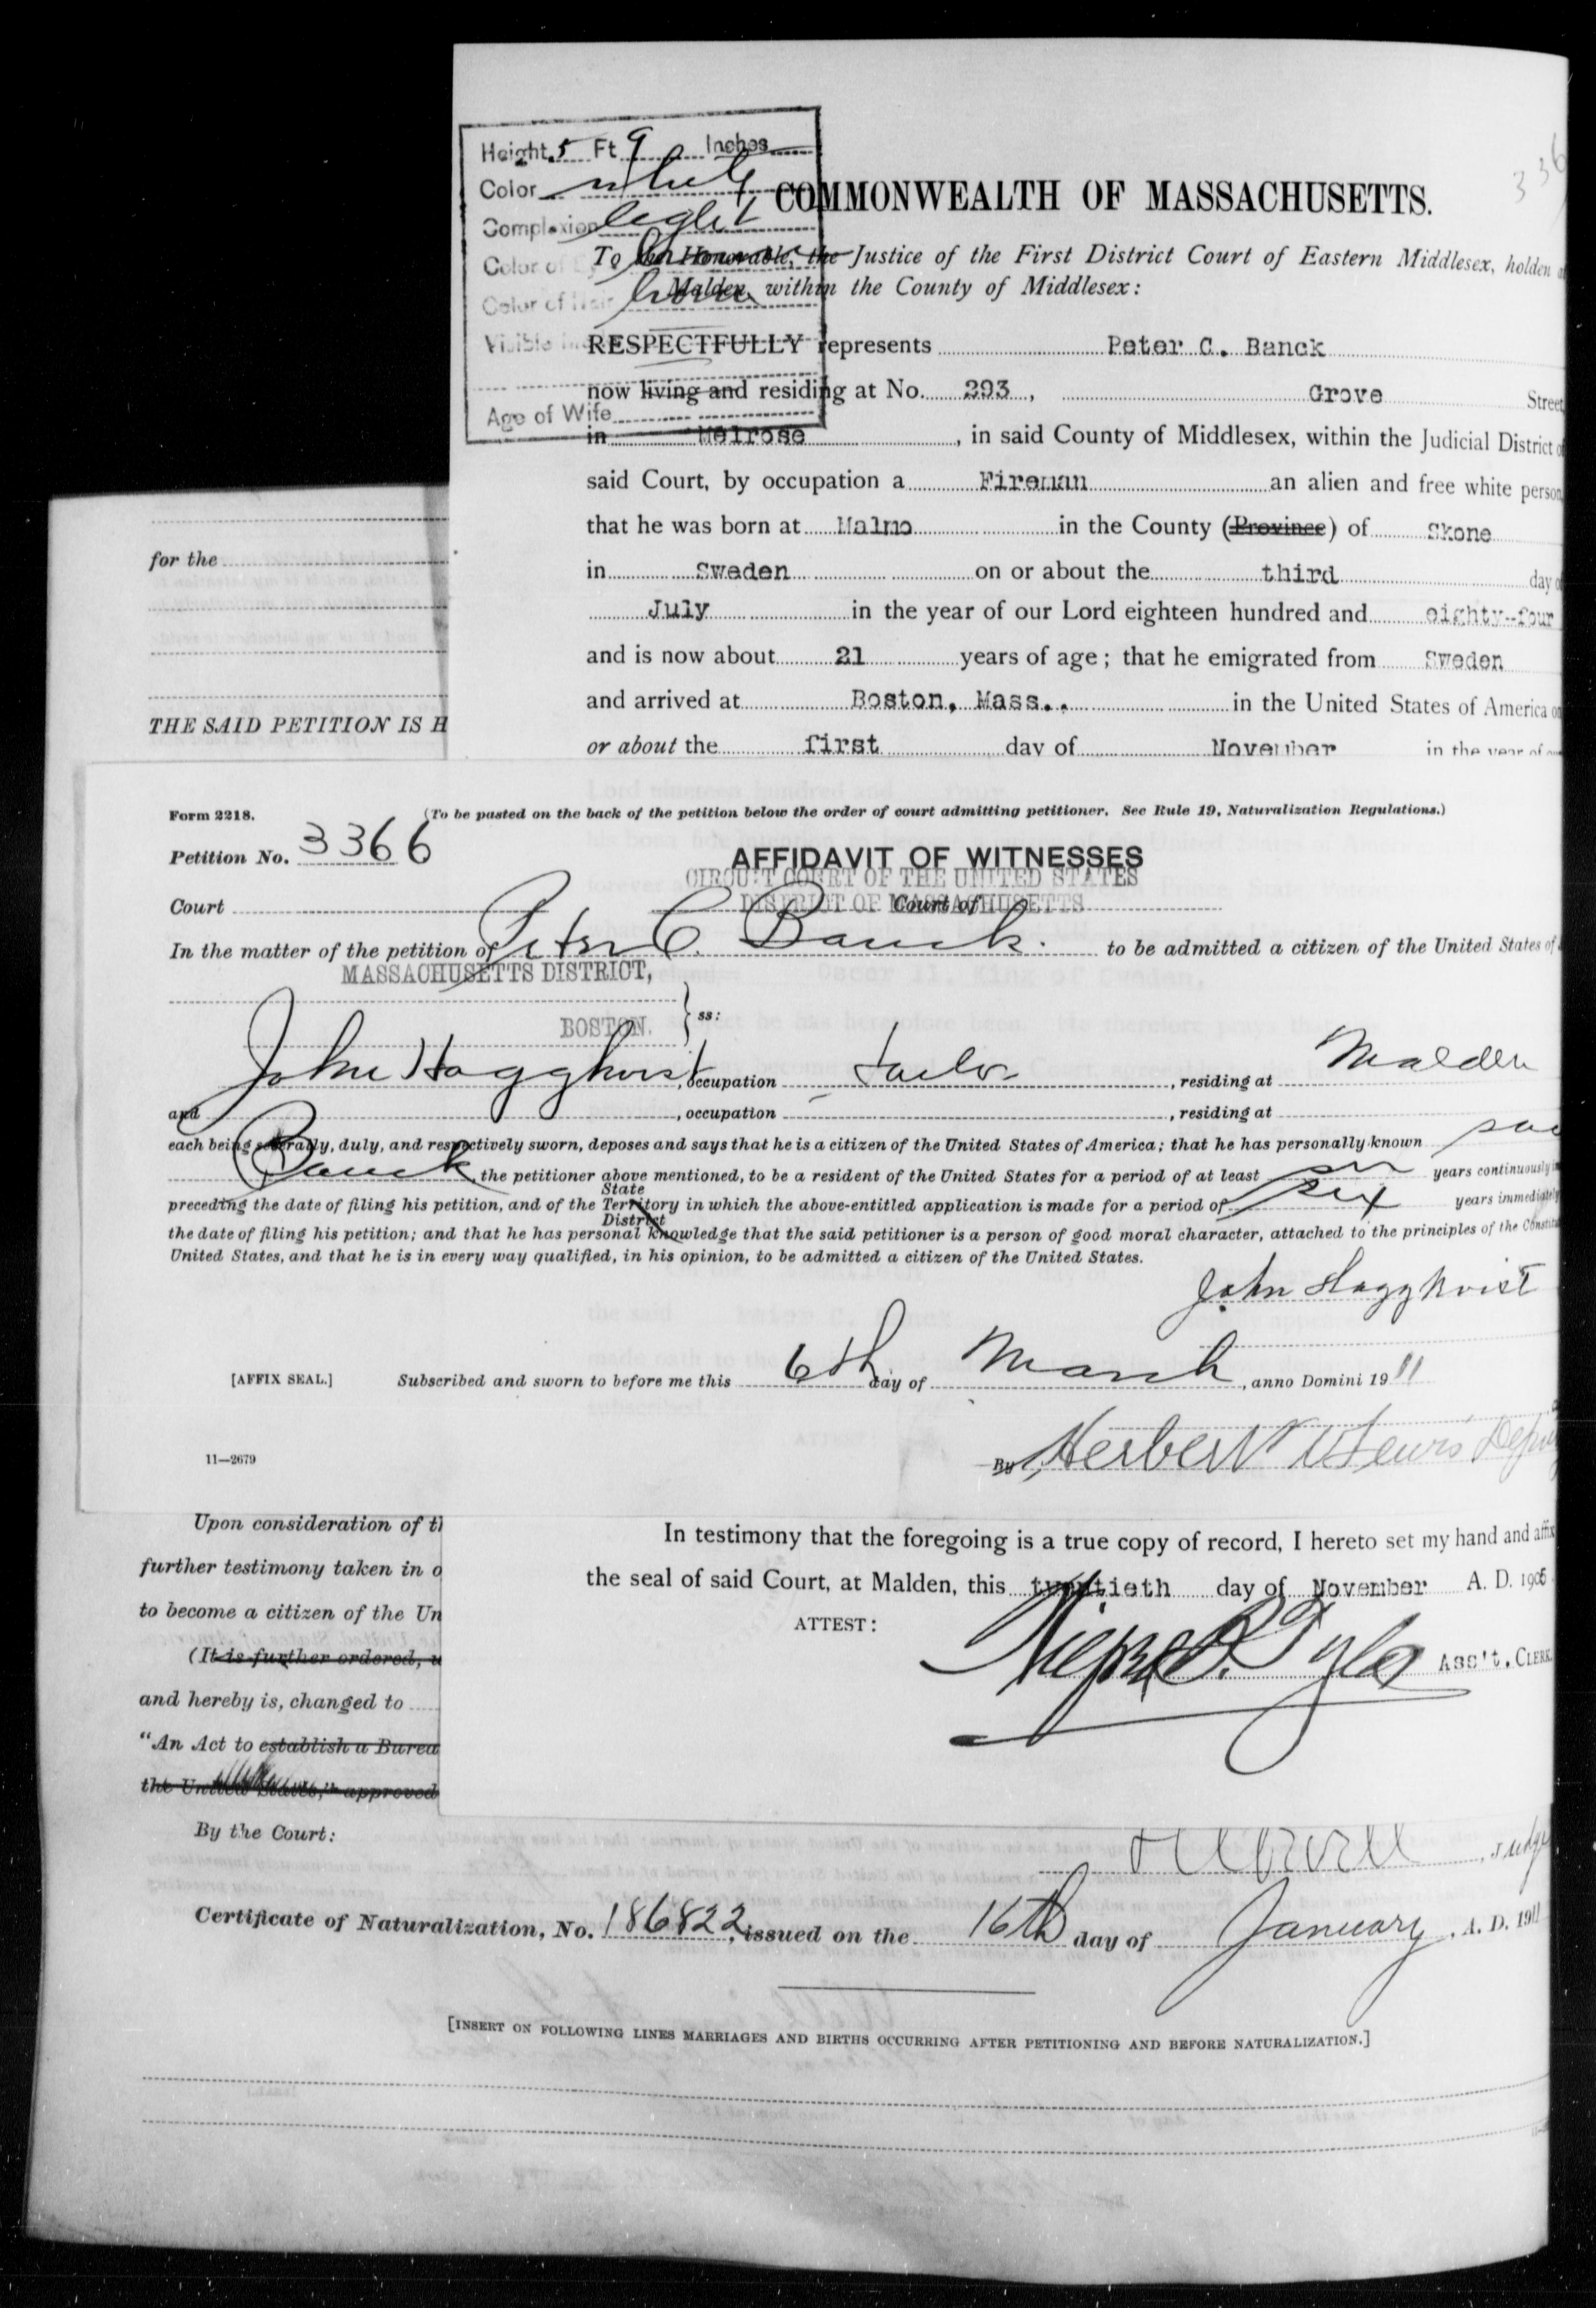 Petition for Naturalization of Peter Cristian Banck